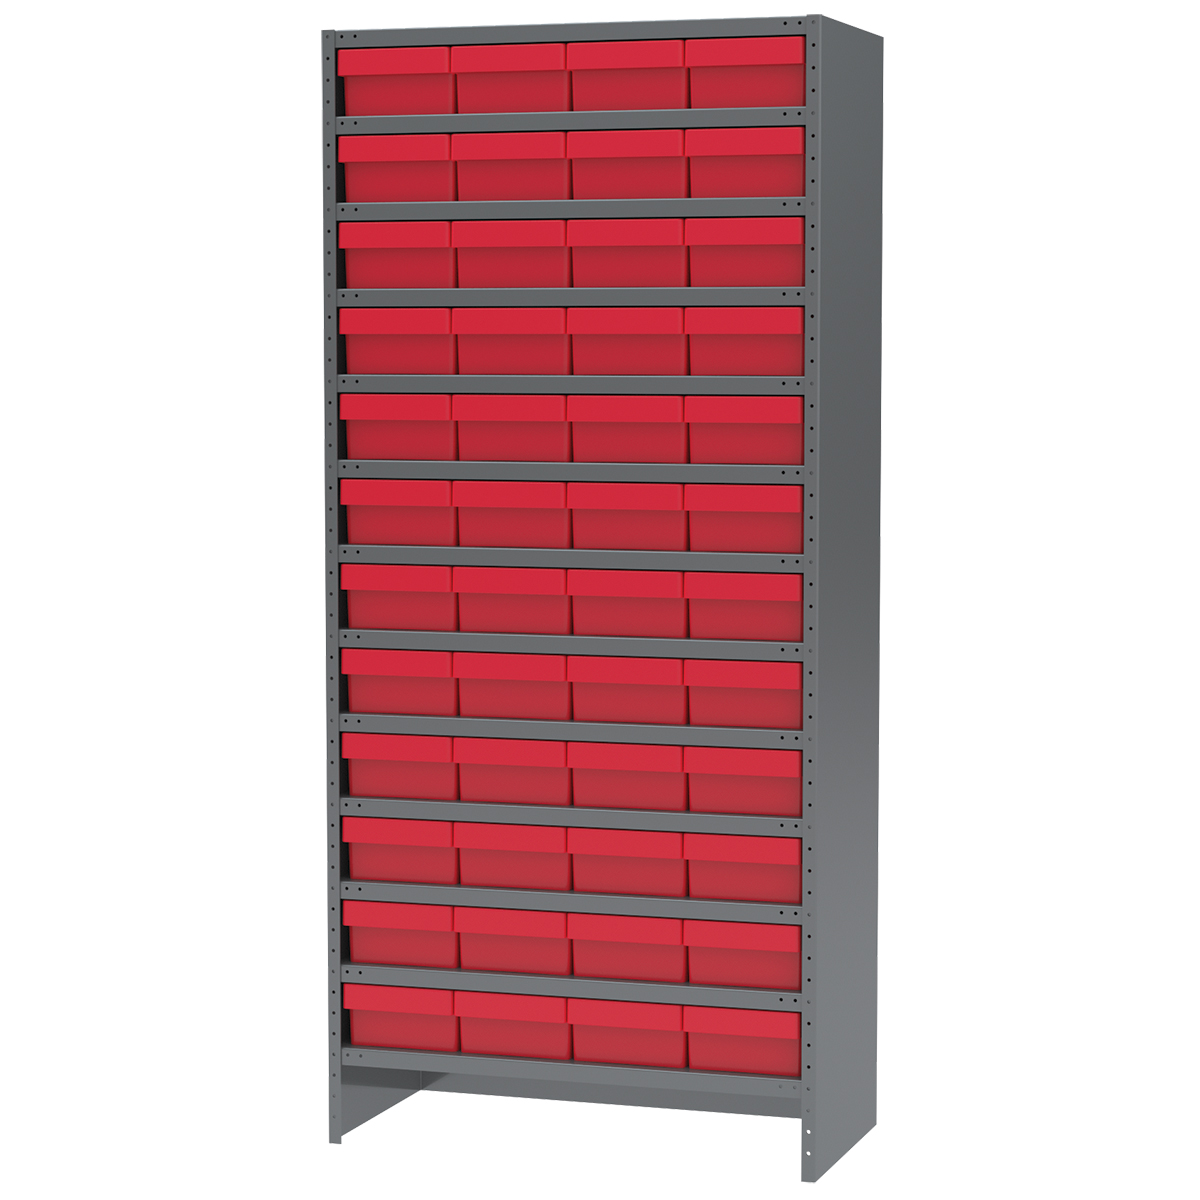 Enclosed Steel Shelving Kit, 18x36x79, 48 AkroDrawers, Gray/Red.  This item sold in carton quantities of 1.